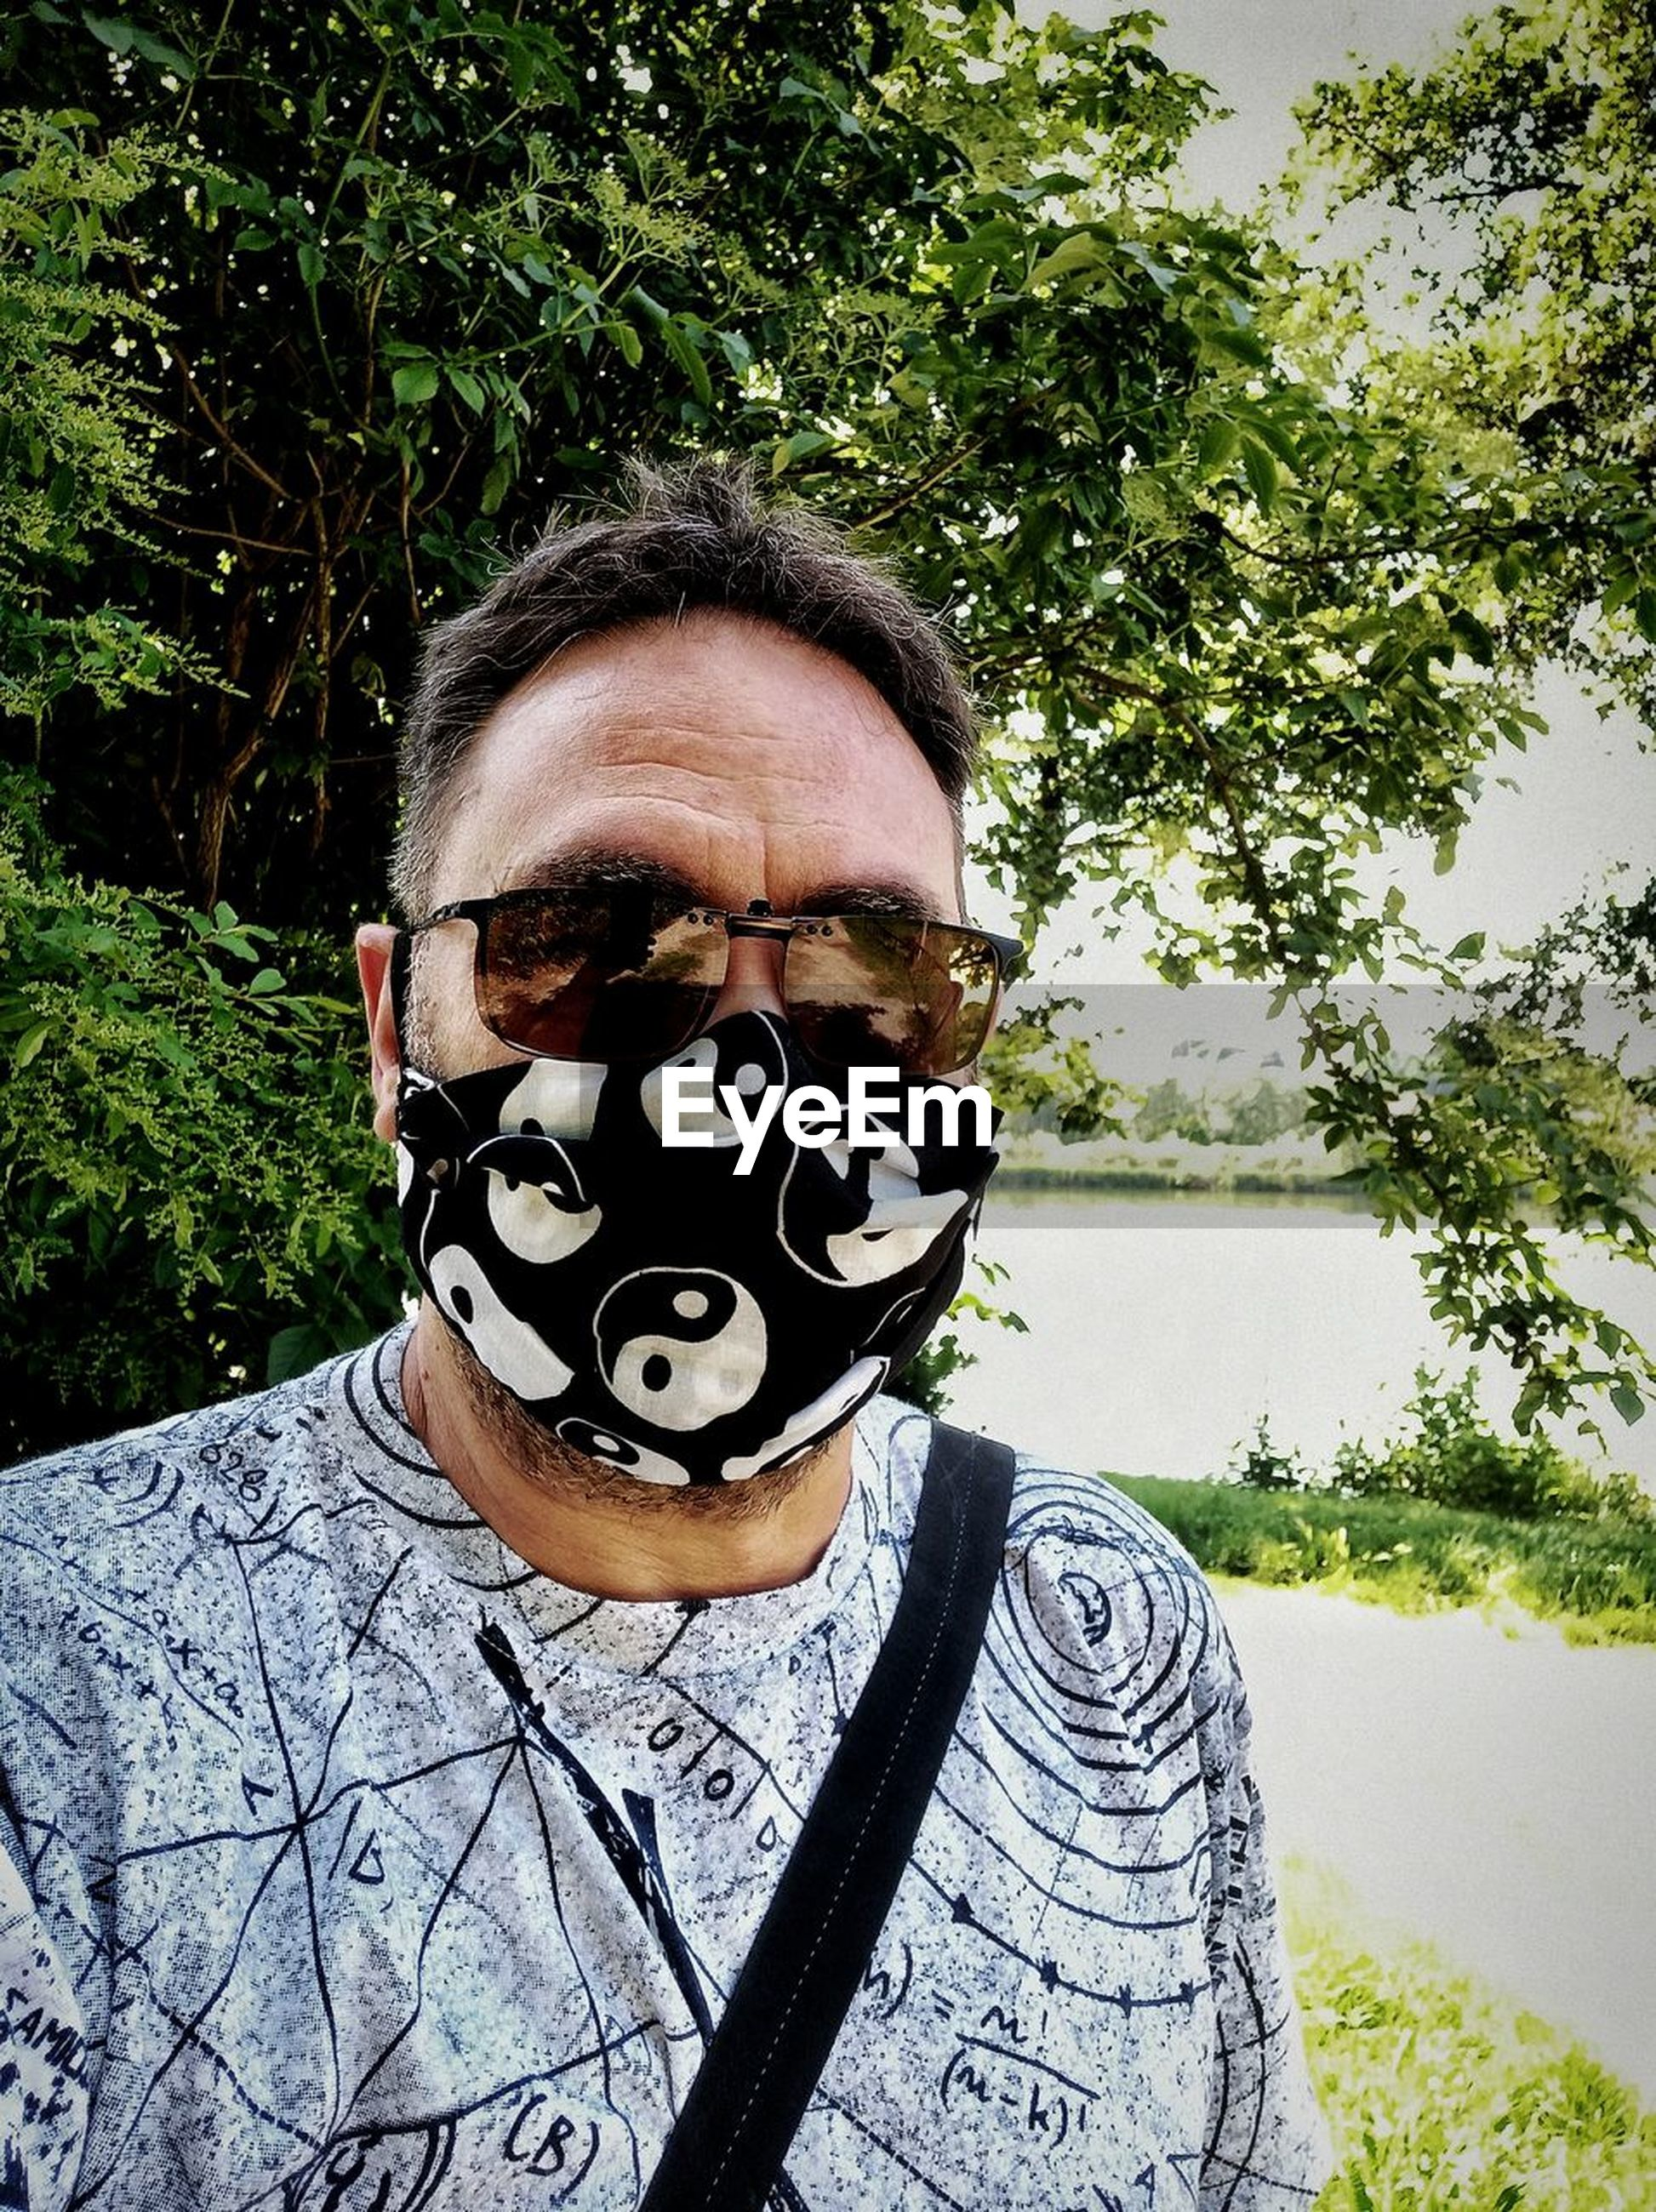 one person, portrait, looking at camera, clothing, headshot, plant, tree, front view, disguise, adult, men, mask, day, mask - disguise, leisure activity, glasses, young adult, nature, outdoors, lifestyles, costume, human face, obscured face, person, art, standing, casual clothing